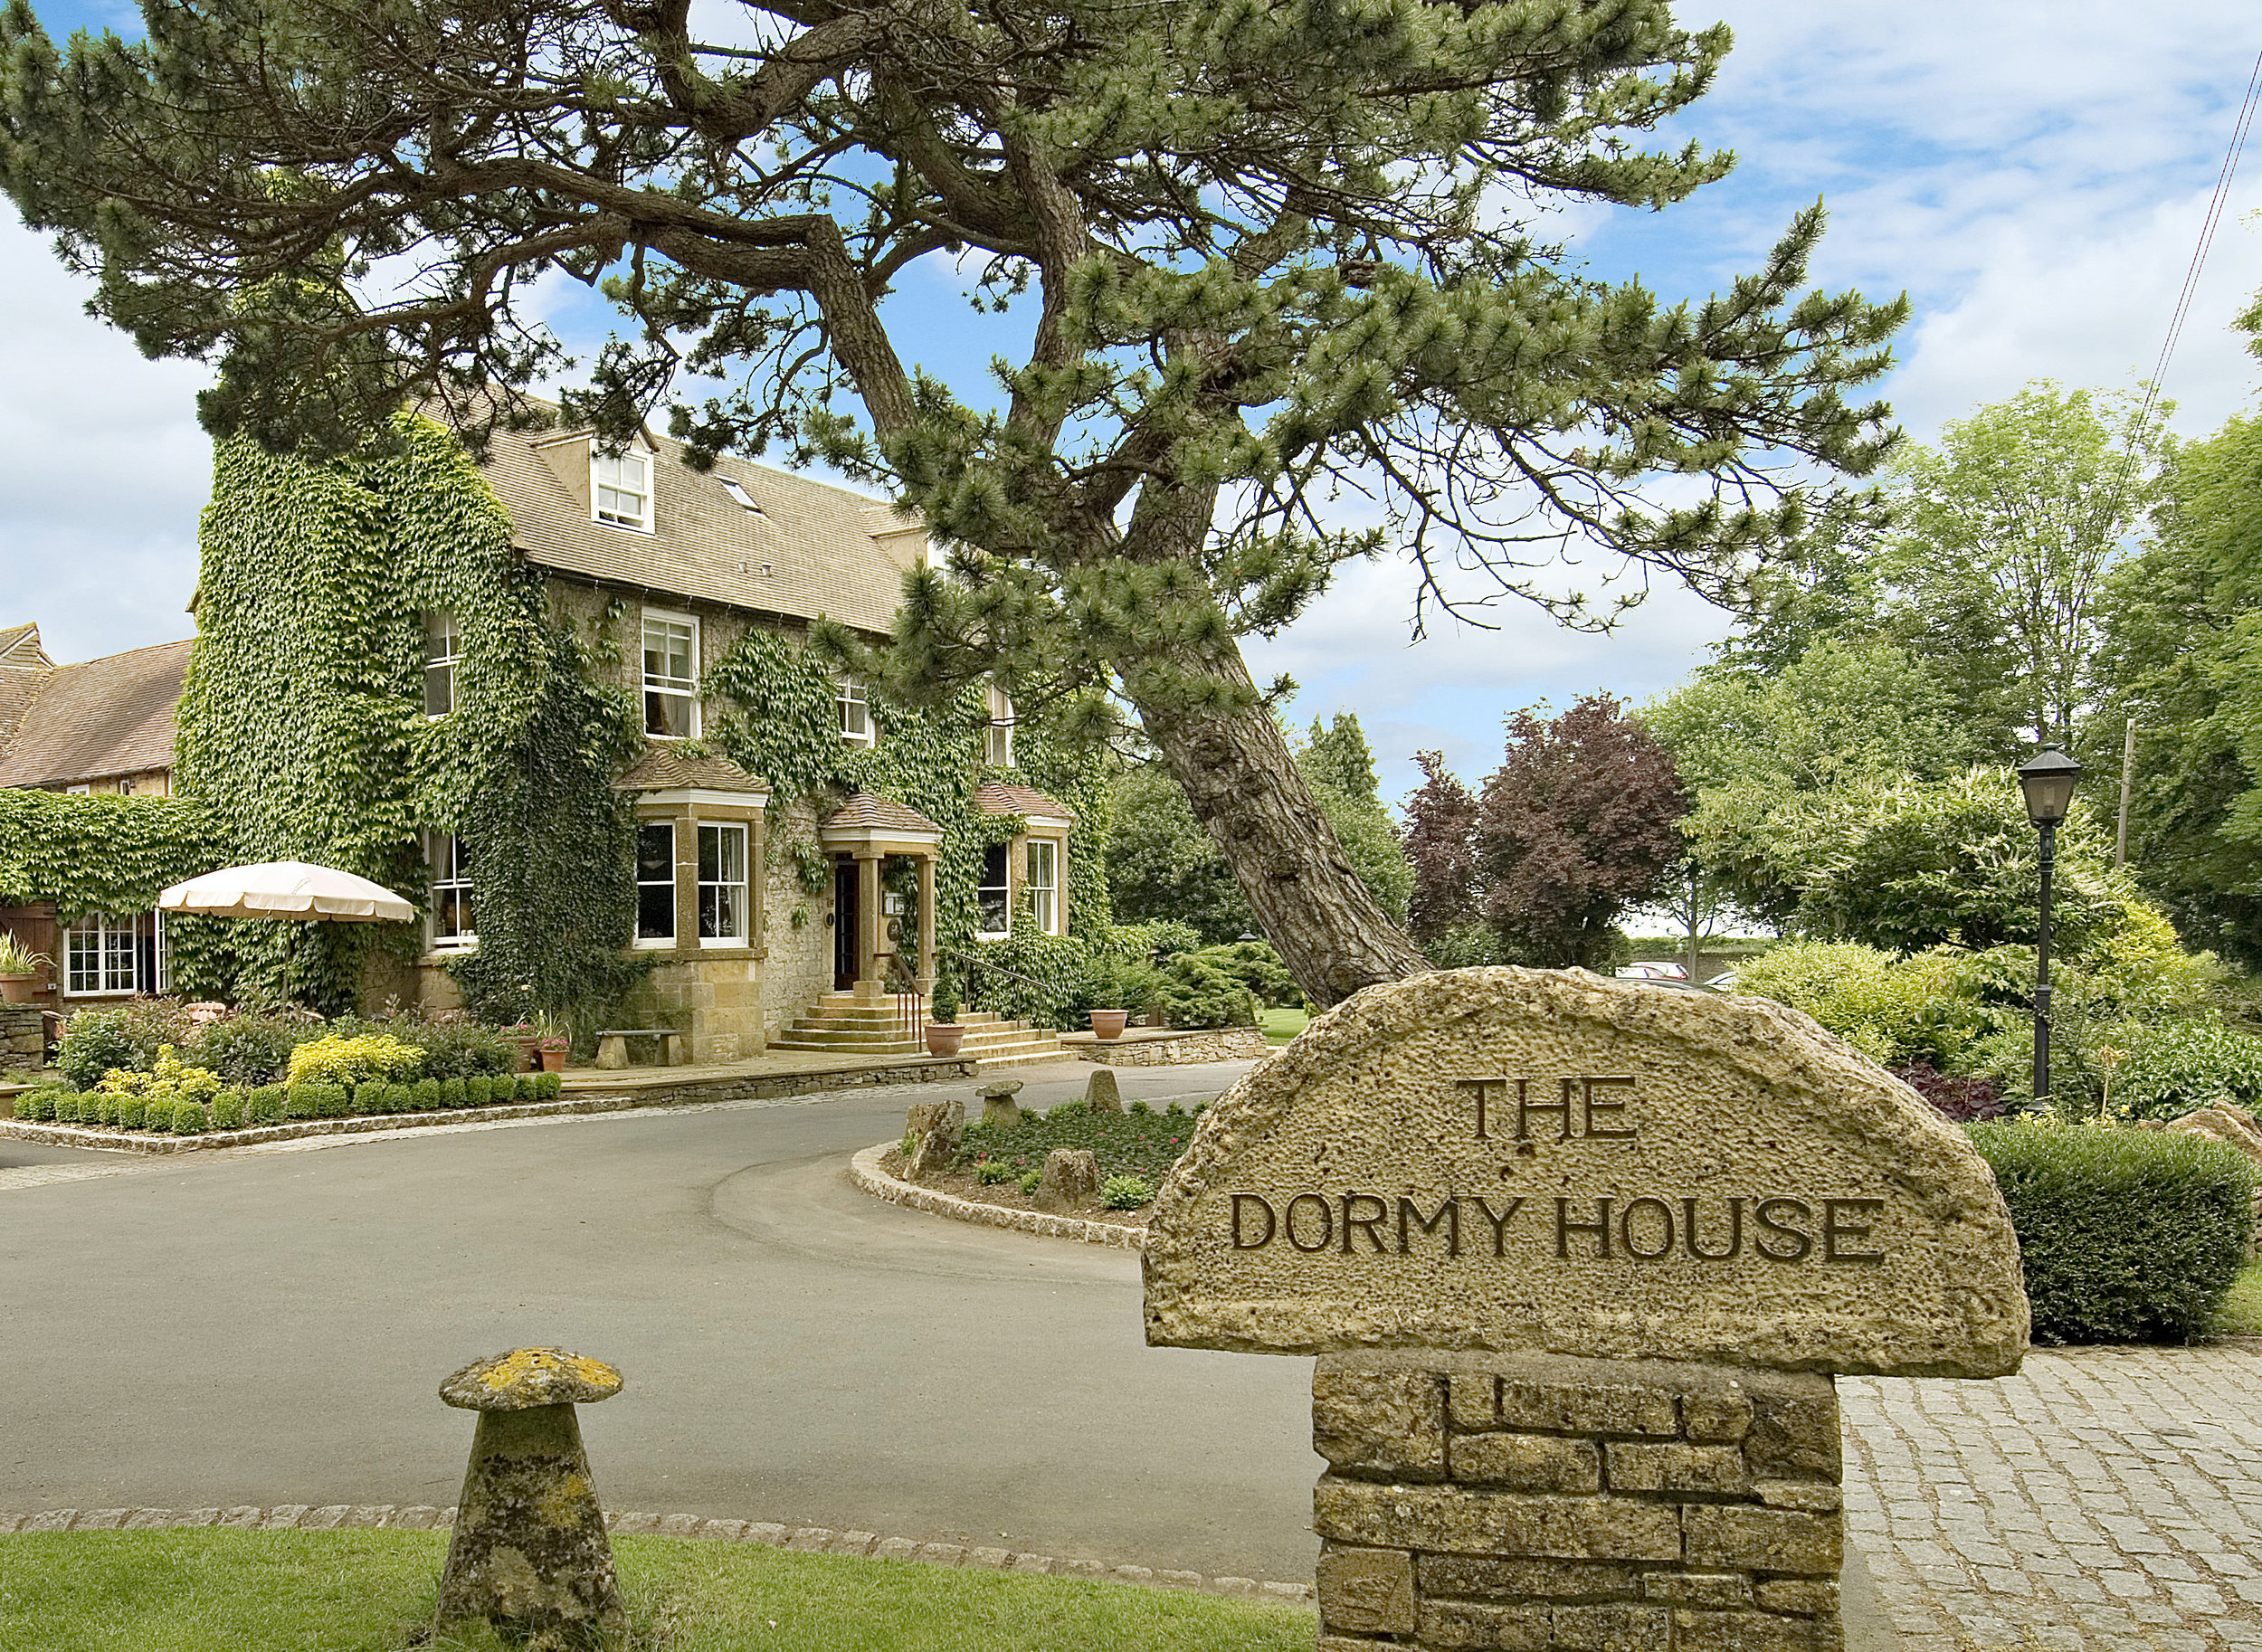 Dormy House Cotswolds